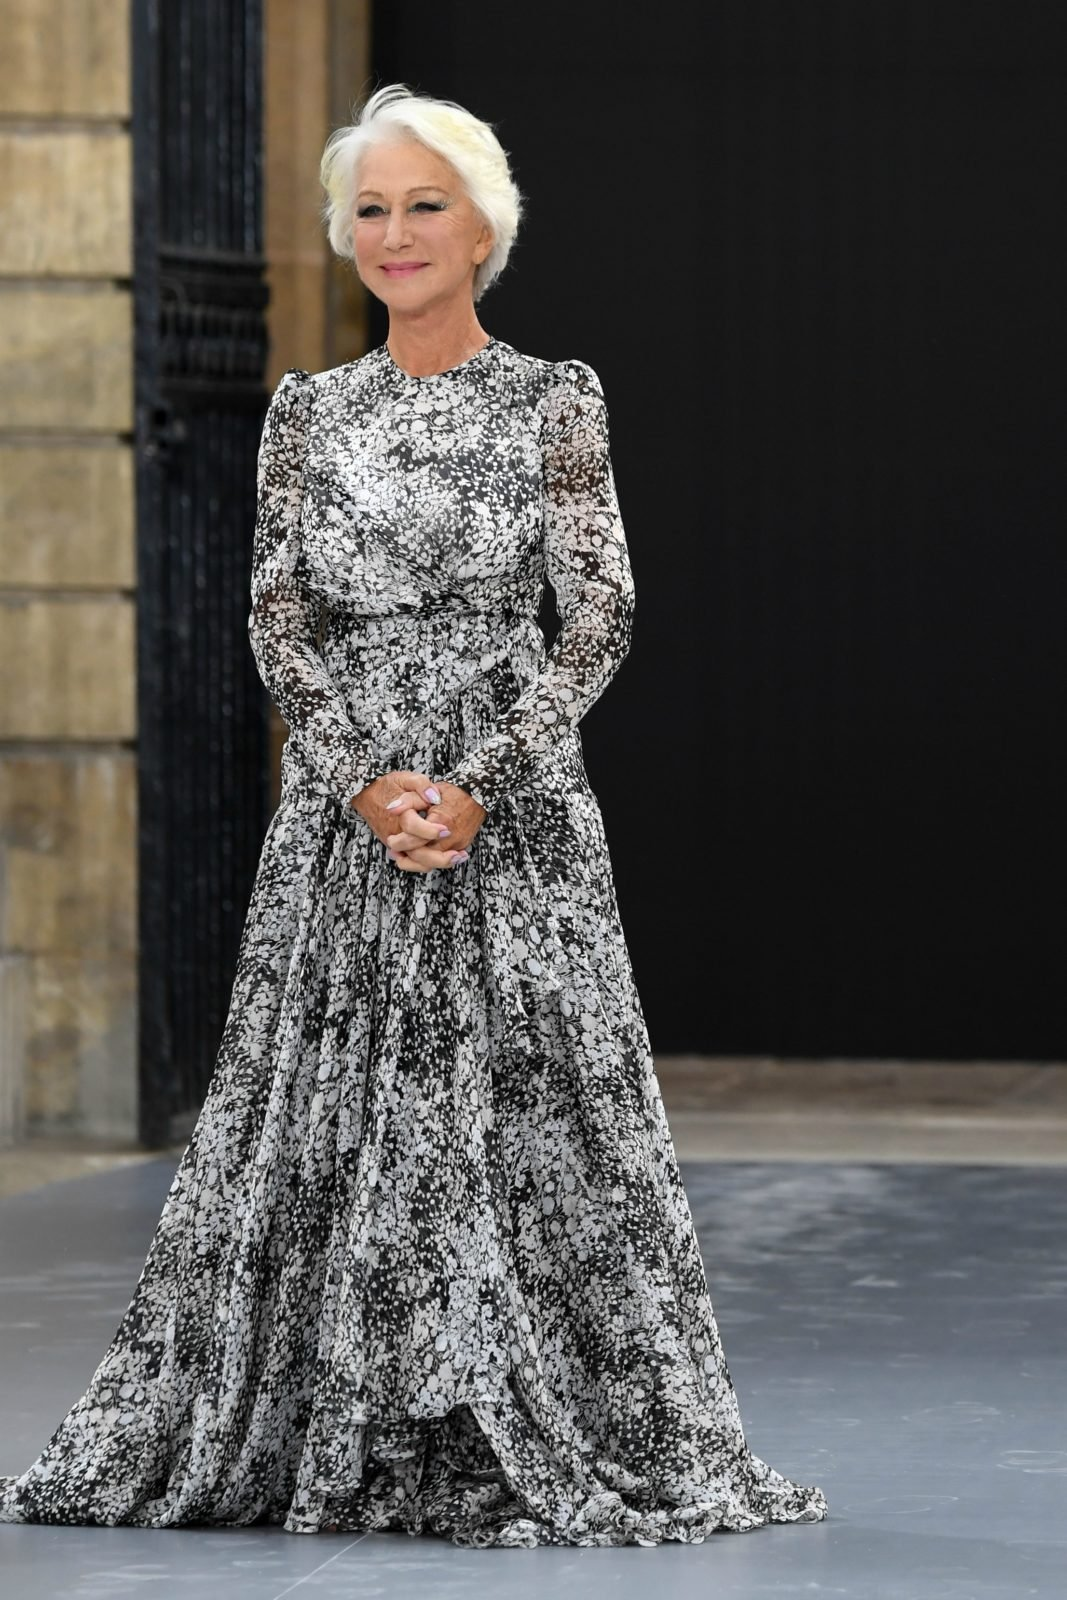 Helen Mirren stood out in the Giambattista Valli dress. Source: Getty.